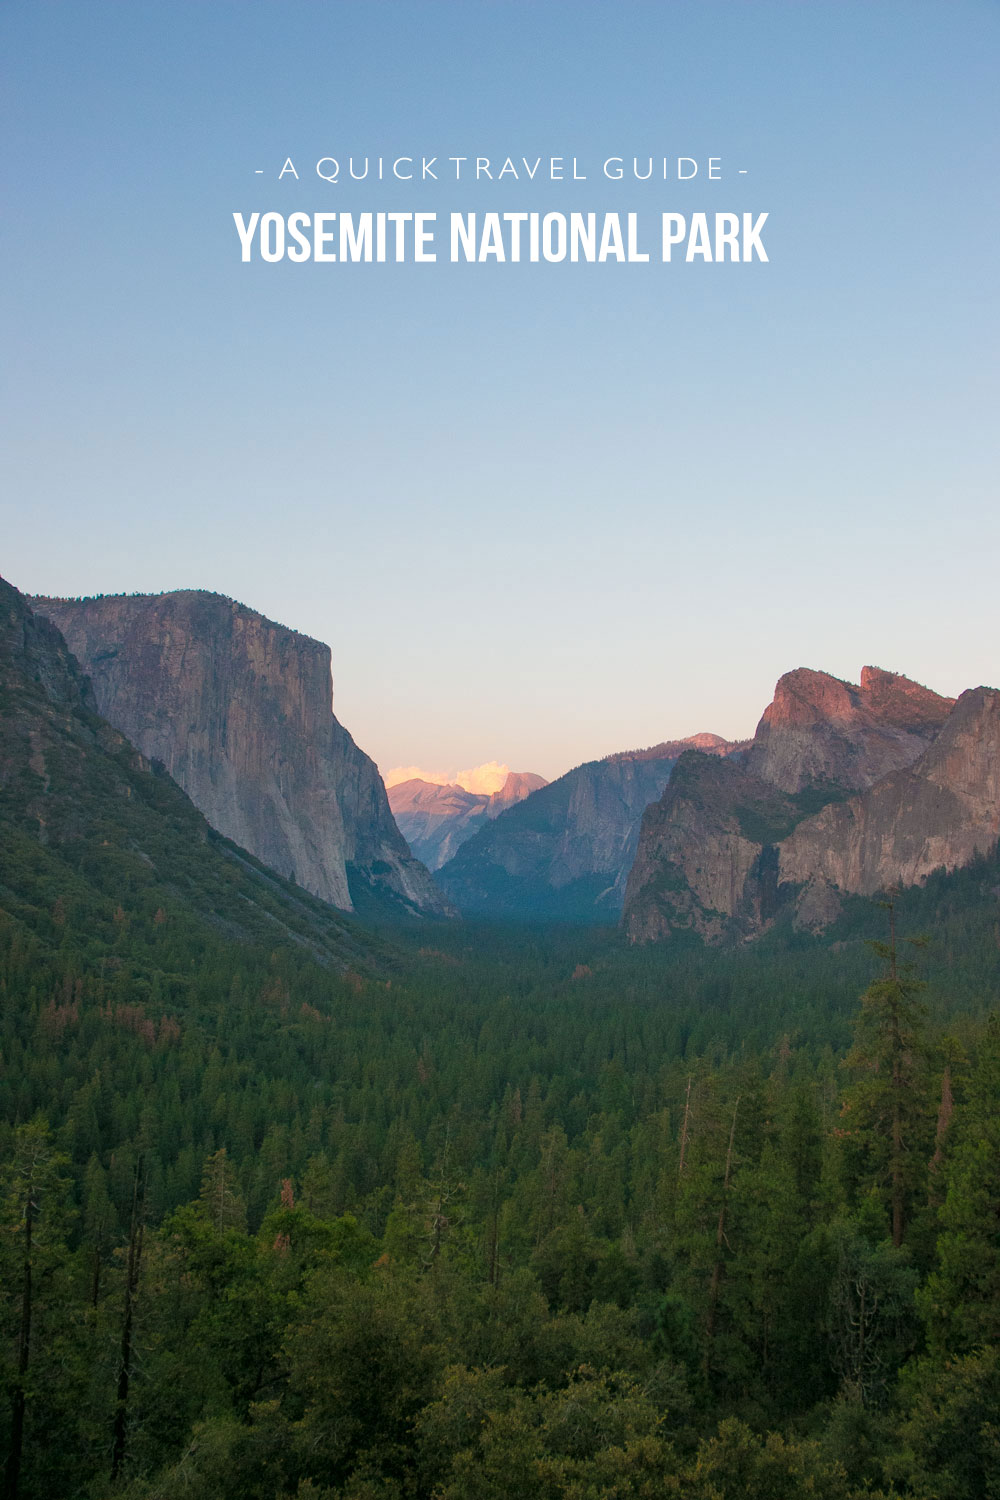 A Quick Travel Guide to Yosemite National Park by Jaharn Giles from Mister Weekender